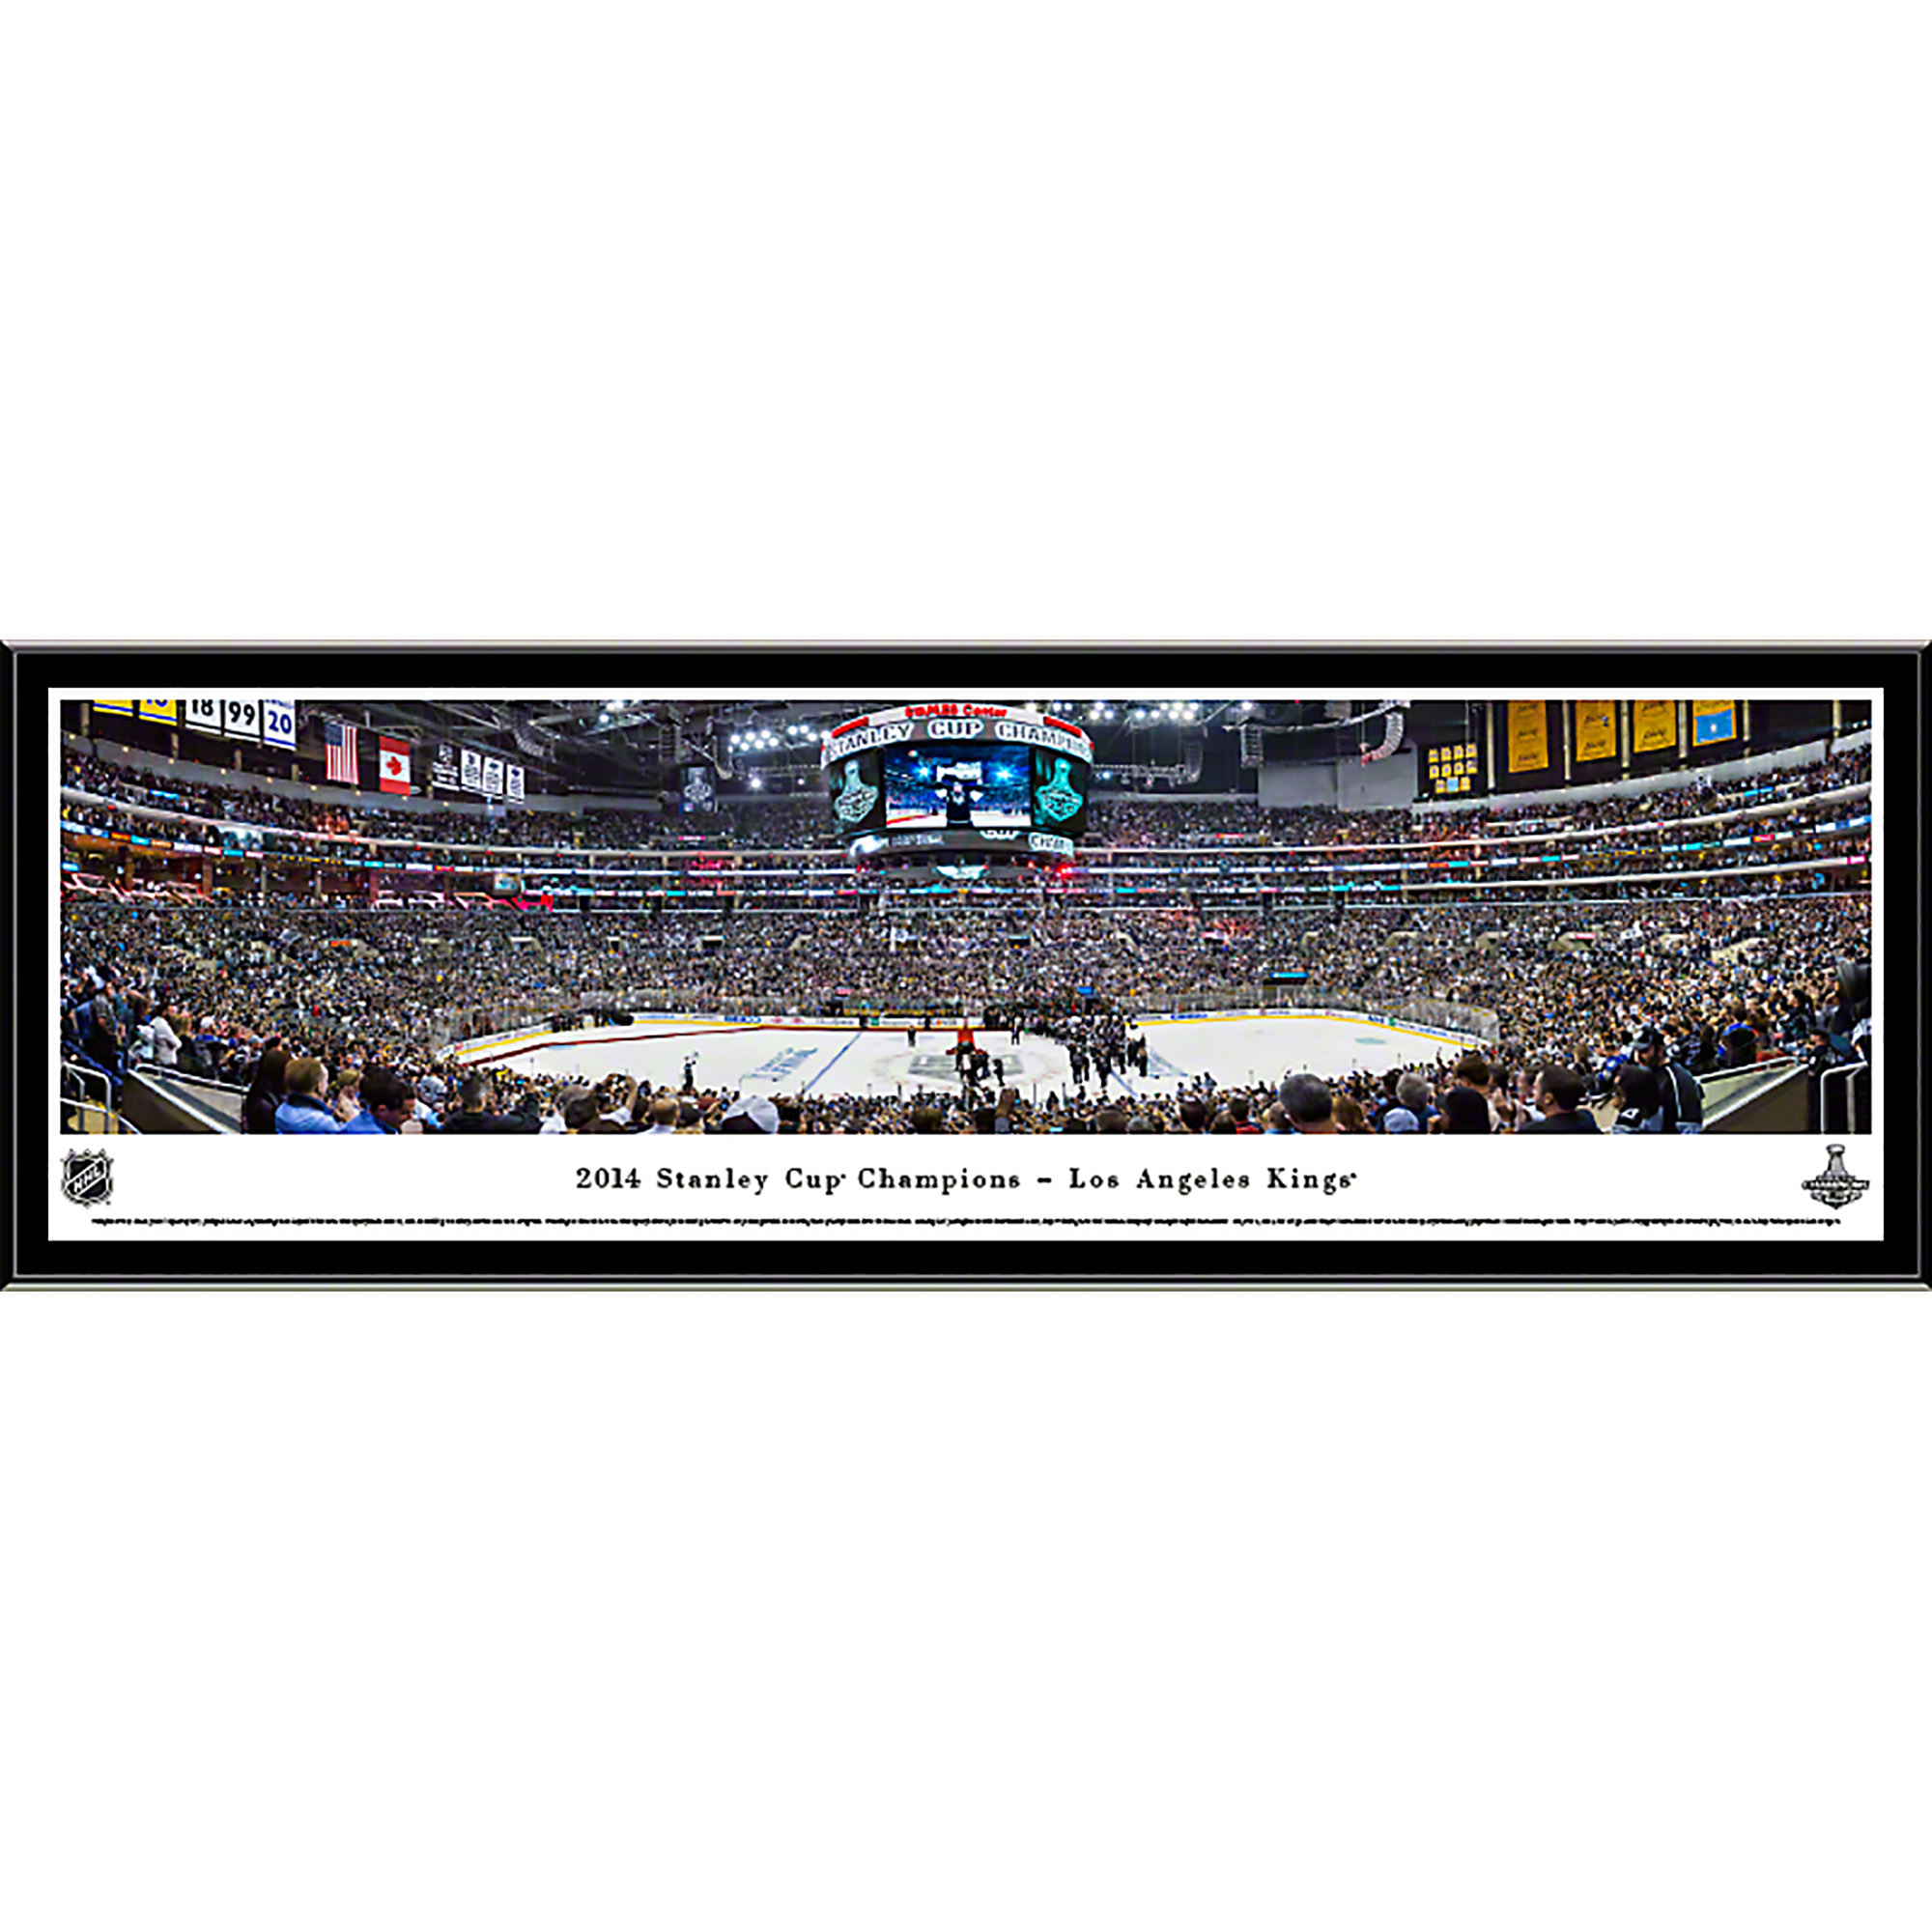 2014 Stanley Cup Champions - Los Angeles Kings - Blakeway Panoramas NHL Print with Select Frame and Single Mat